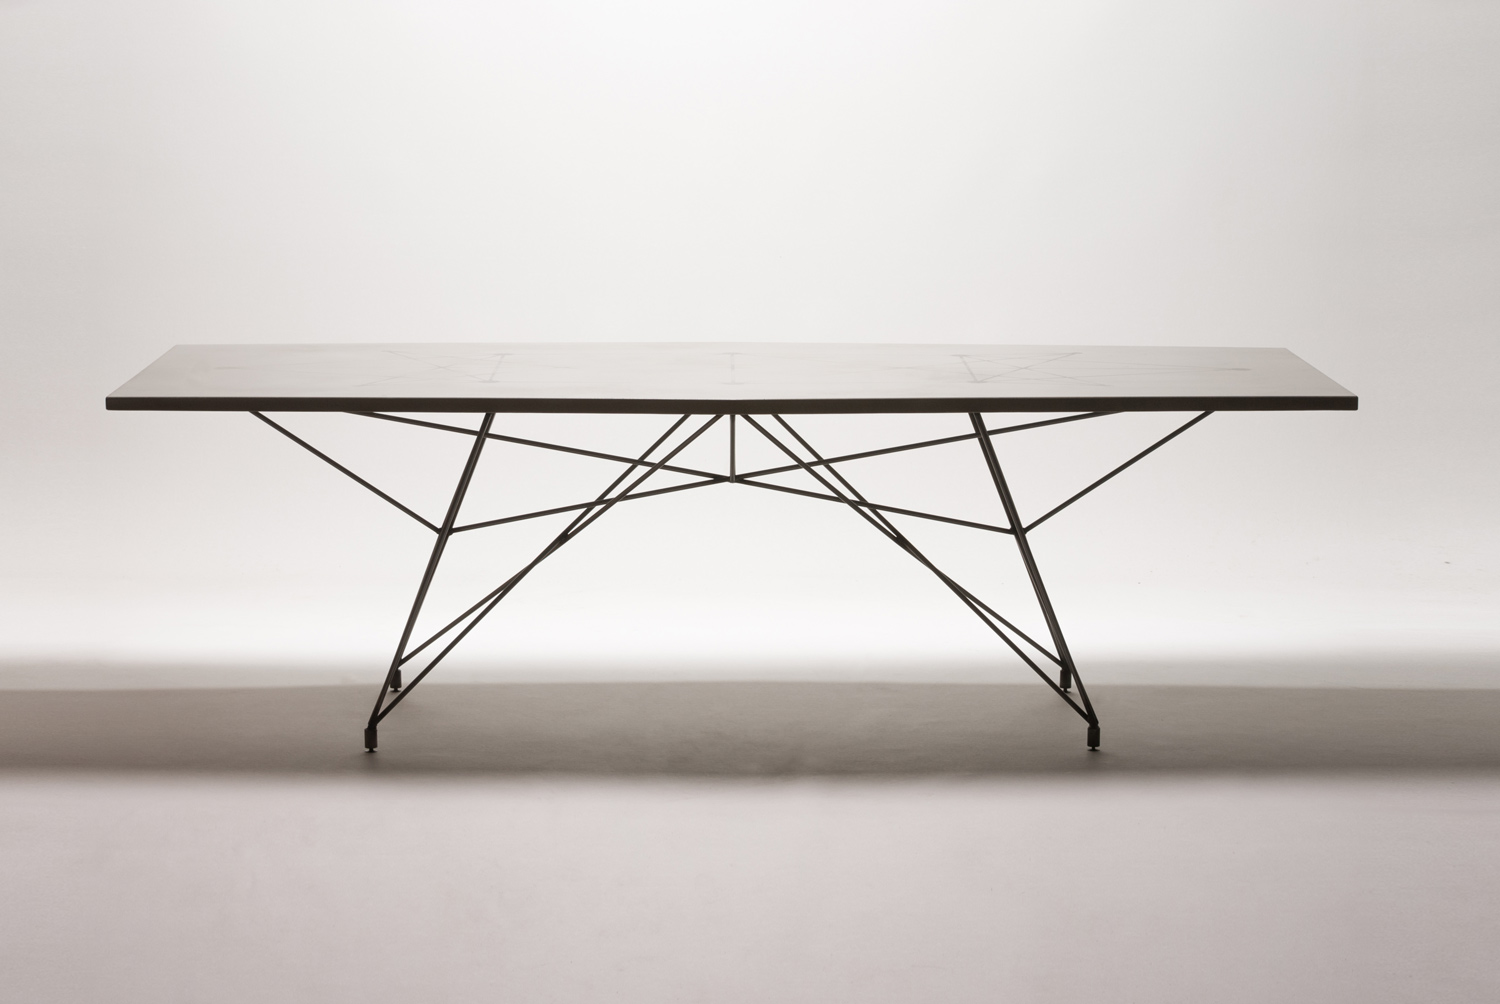 Minimal and modern concrete and steel rod dining table